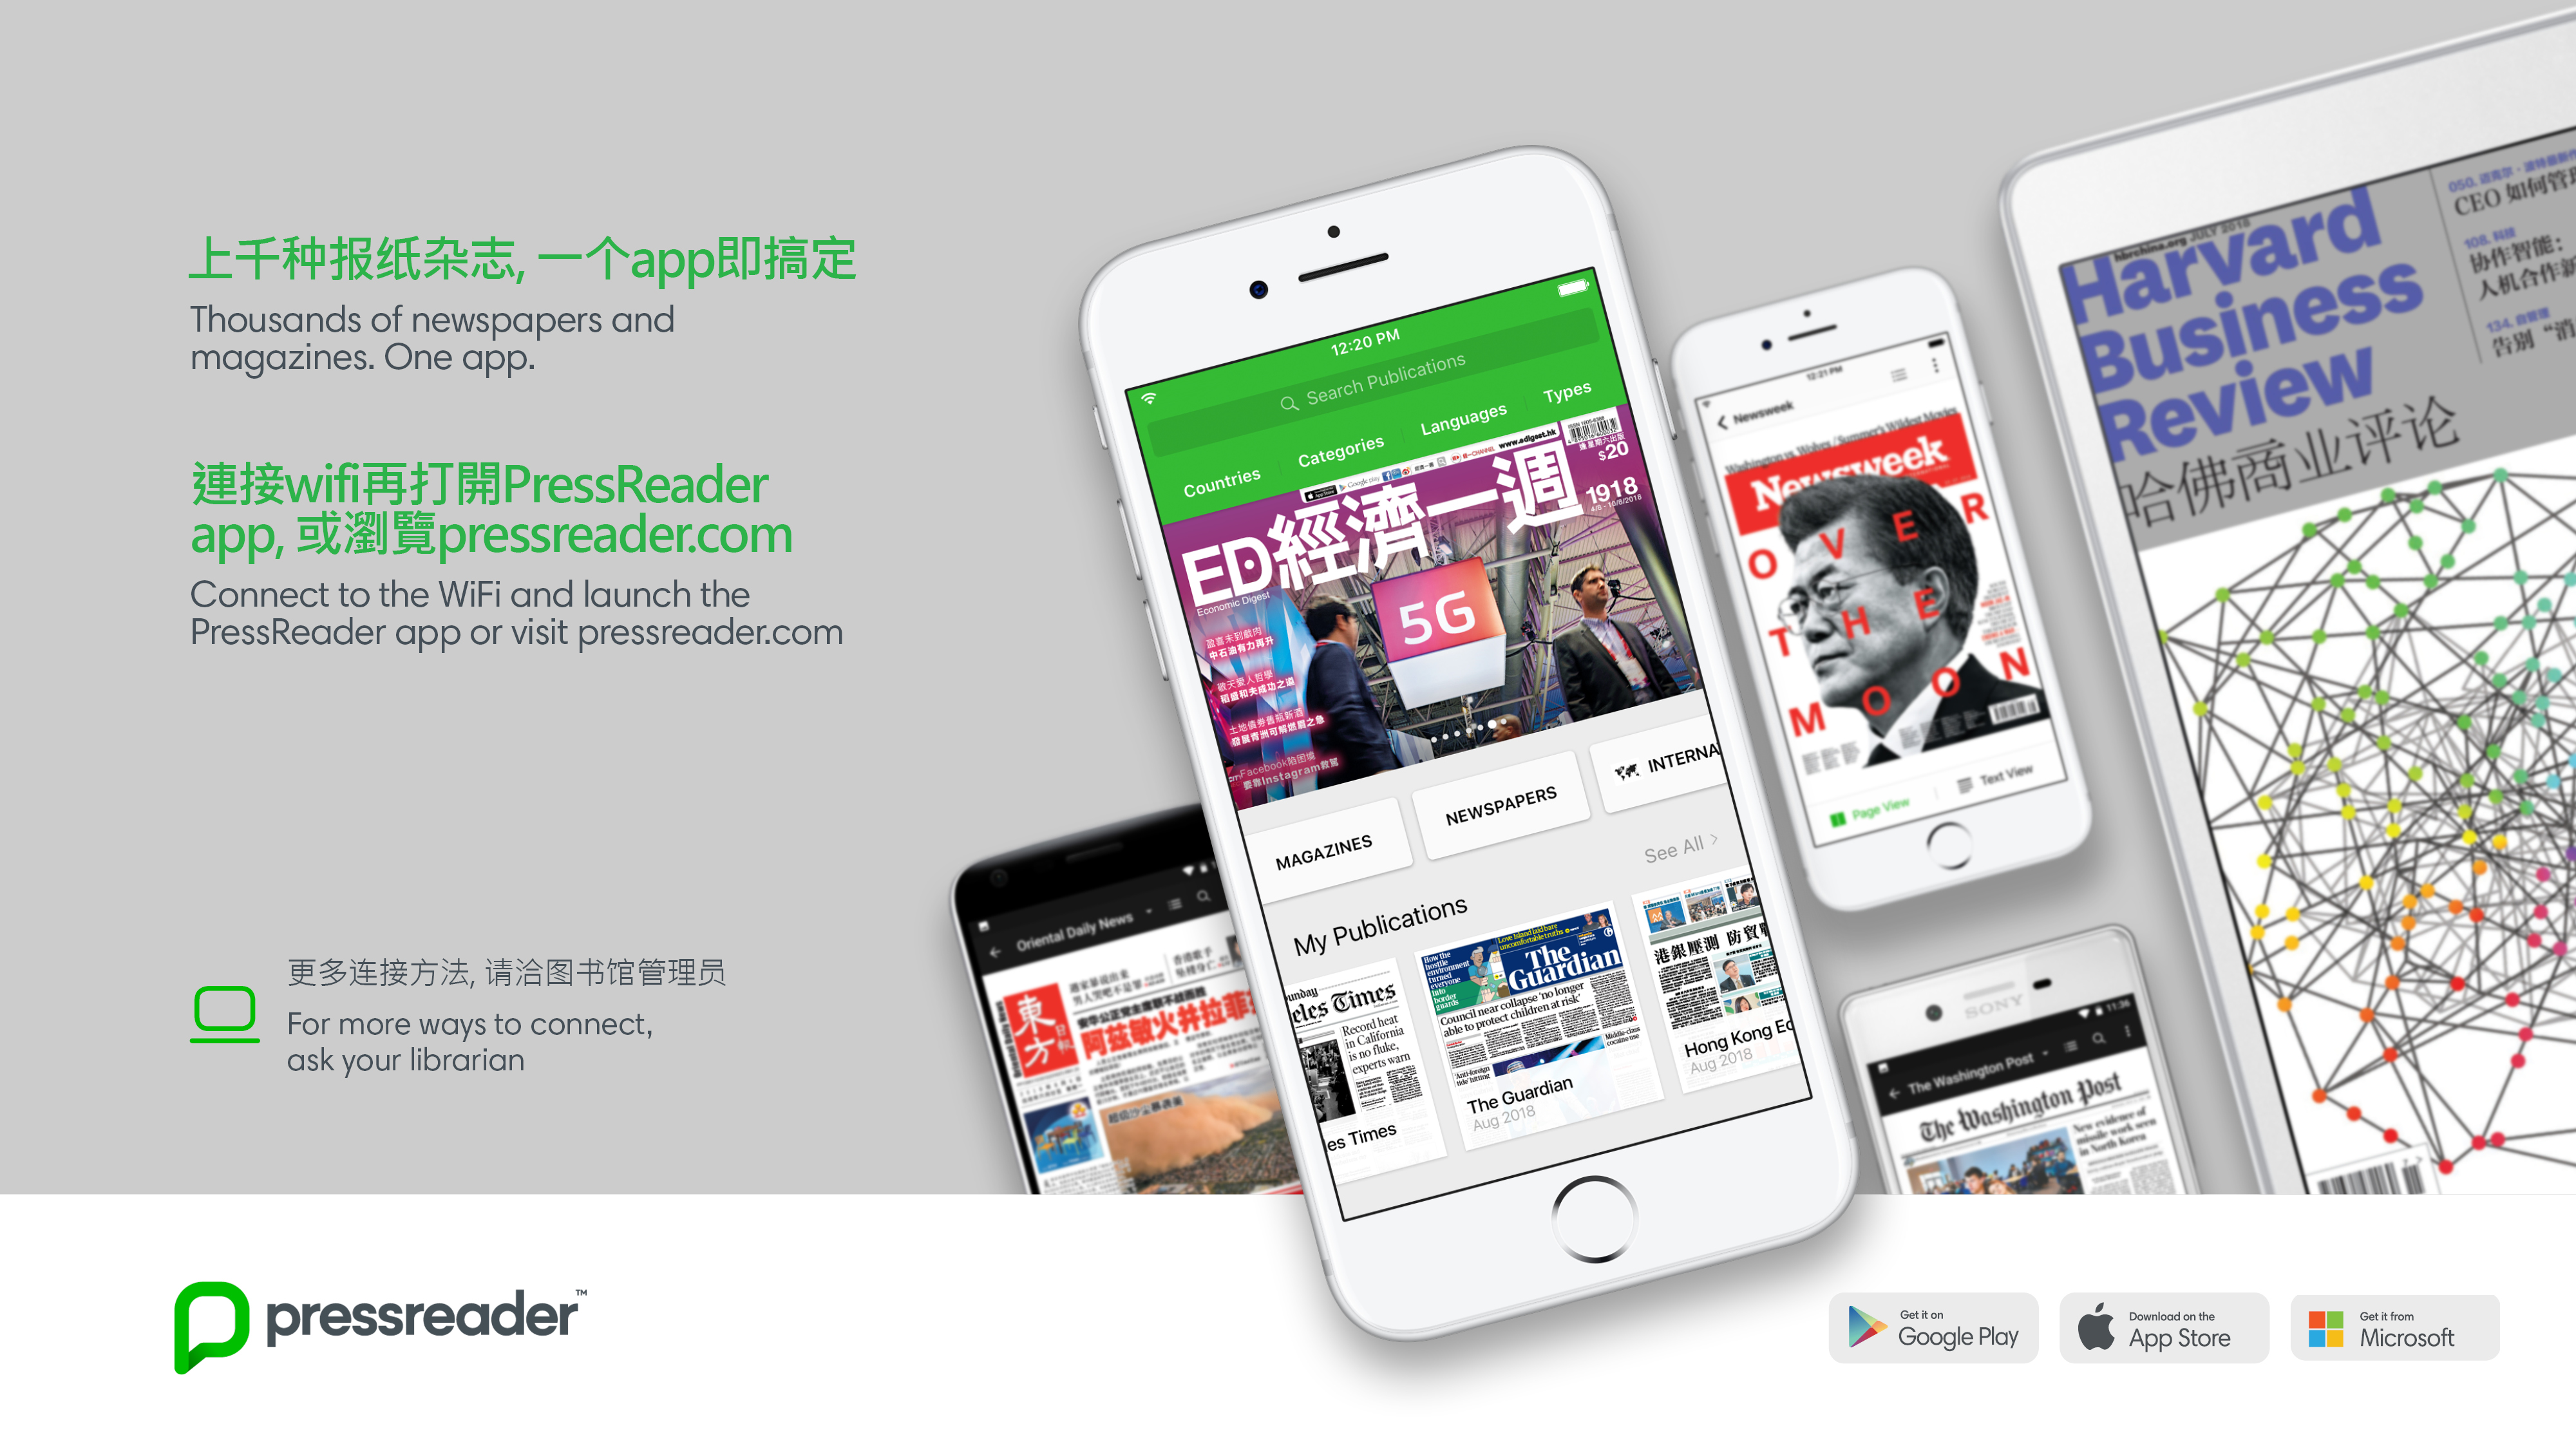 PressReader Poster. Magazine covers in Chinese and English displayed on tablets and phones.